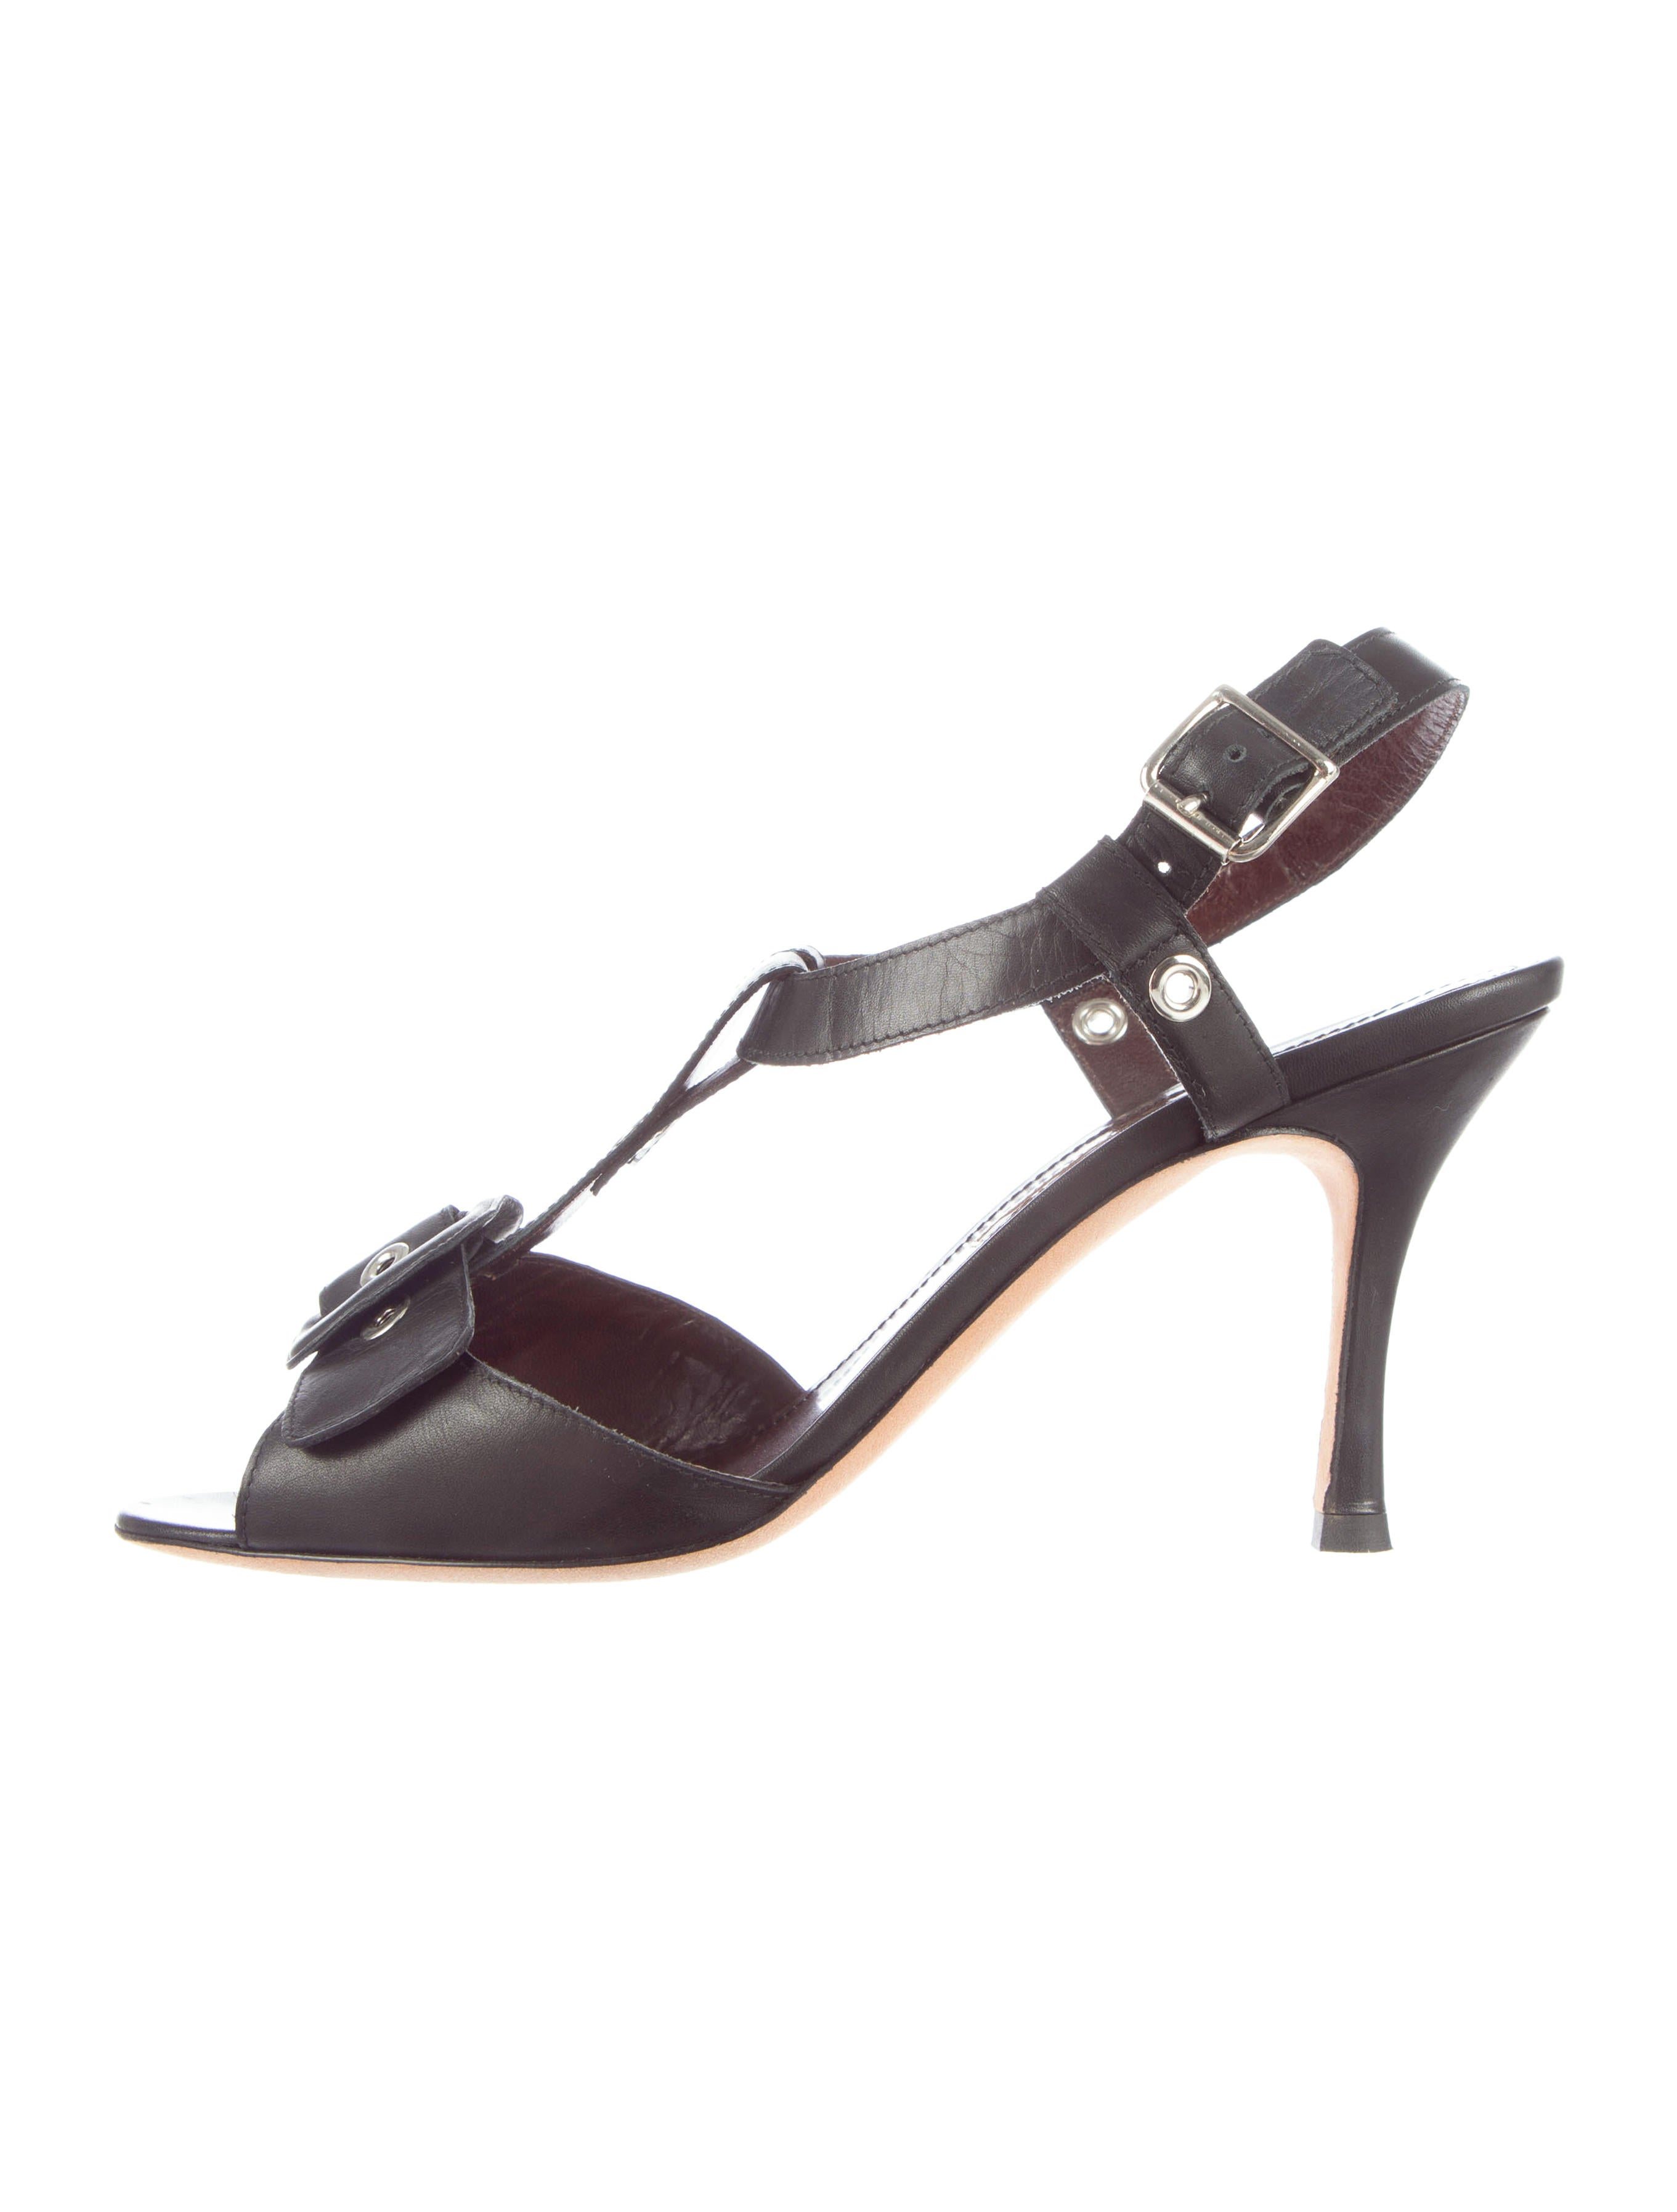 Manolo blahnik sandals shoes moo35669 the realreal for Shoes by manolo blahnik